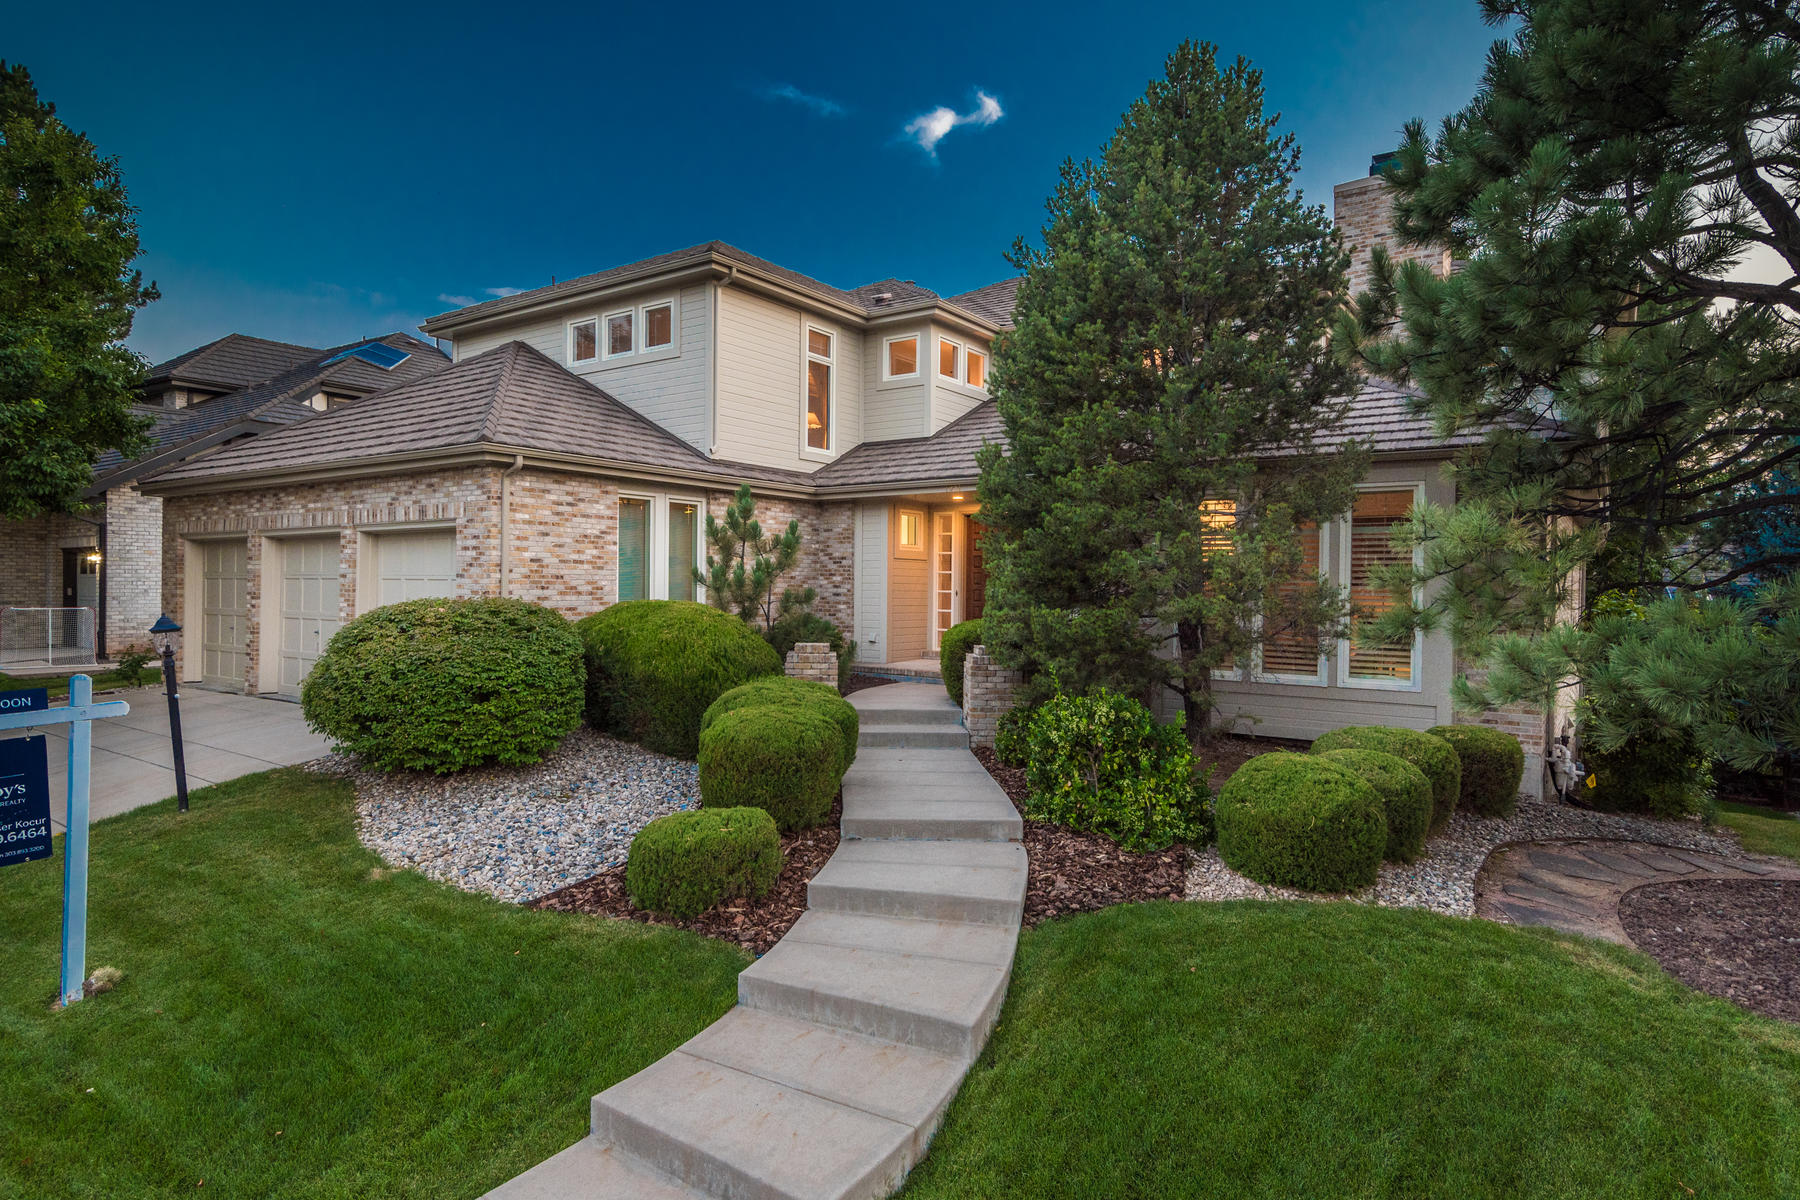 Single Family Homes por un Venta en Heritage Greens 7937 S Fairfax Ct, Centennial, Colorado 80122 Estados Unidos